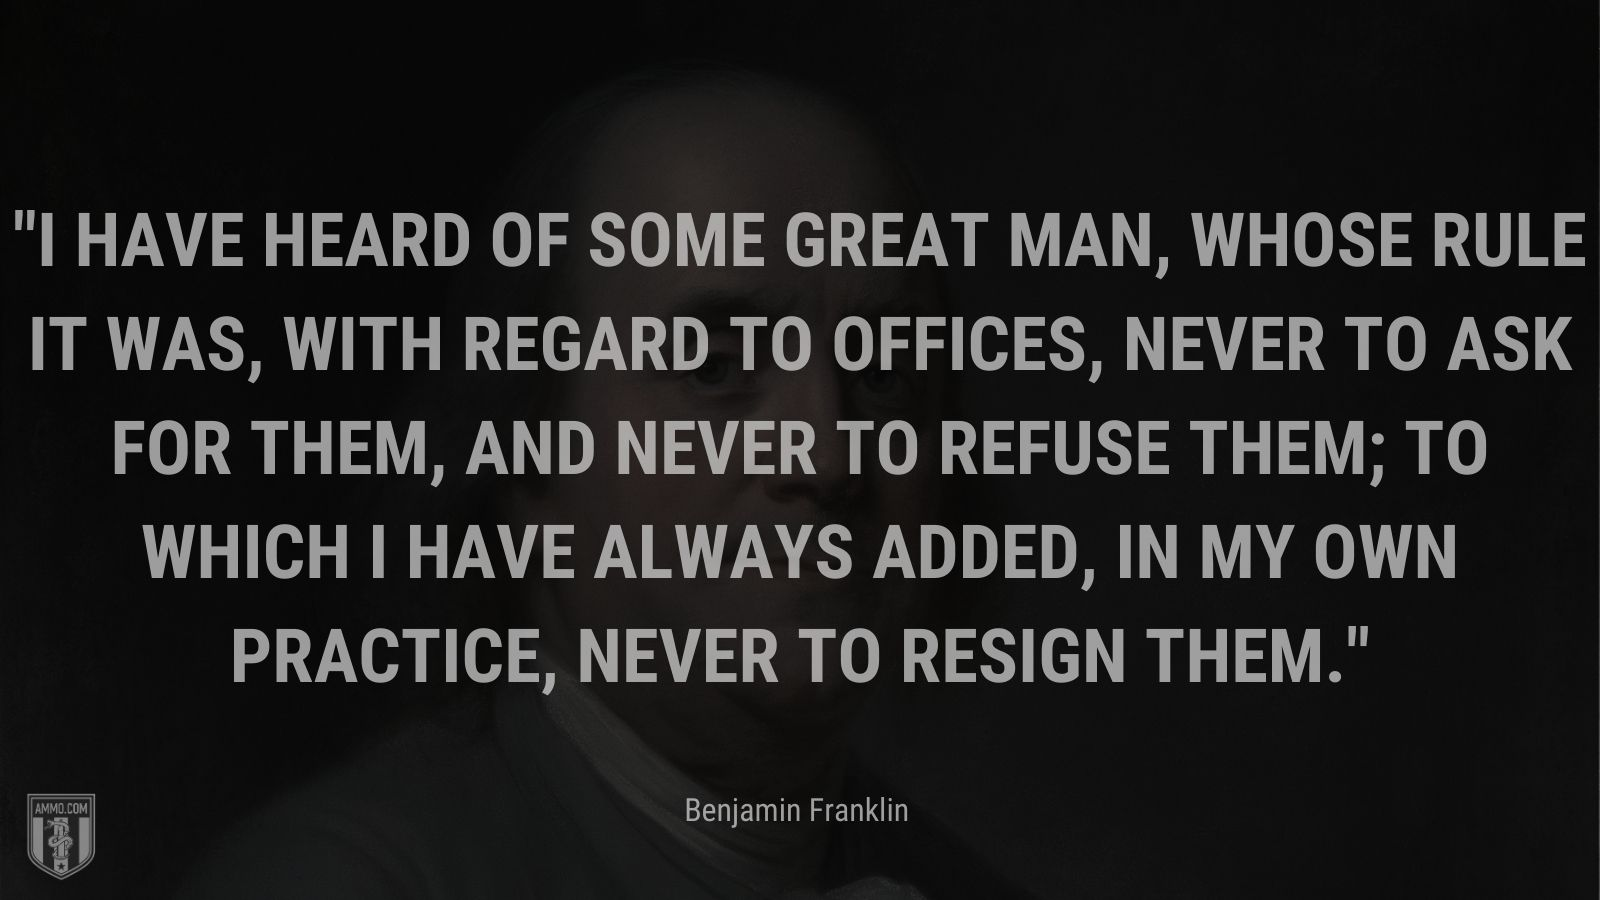 """""""I have heard of some great man, whose rule it was, with regard to offices, never to ask for them, and never to refuse them; to which I have always added, in my own practice, never to resign them."""" - Benjamin Franklin"""